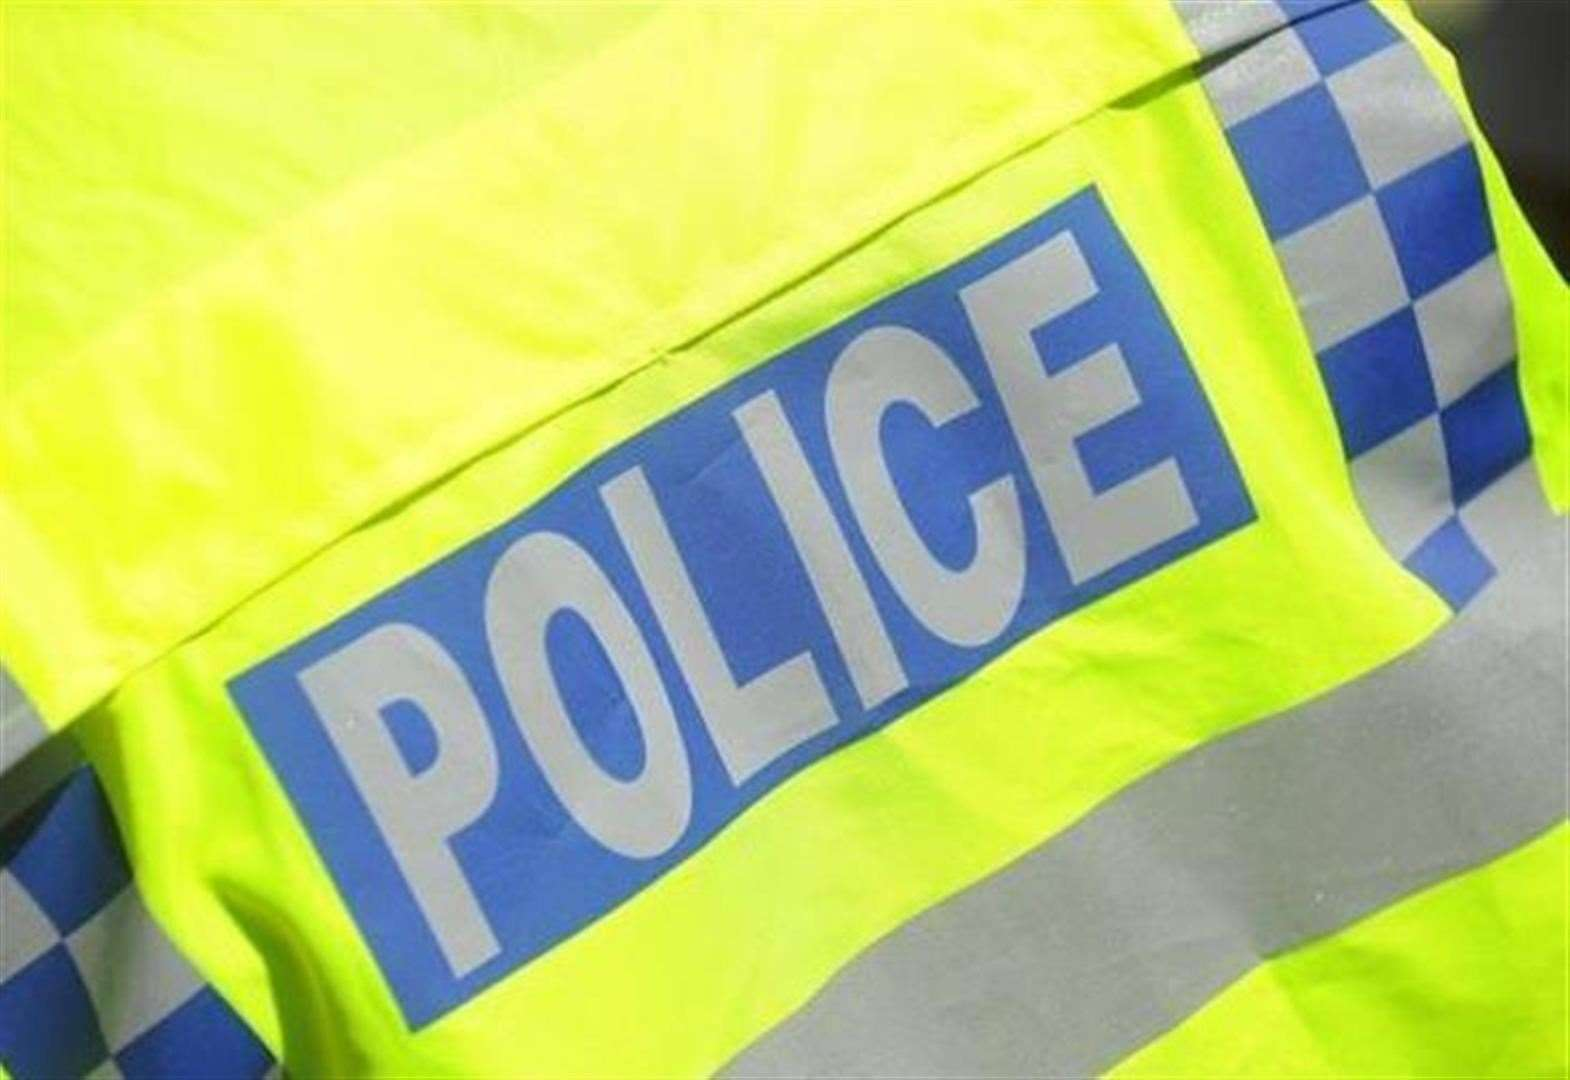 Man found with head injuries by side of road near Rickinghall may have been assaulted